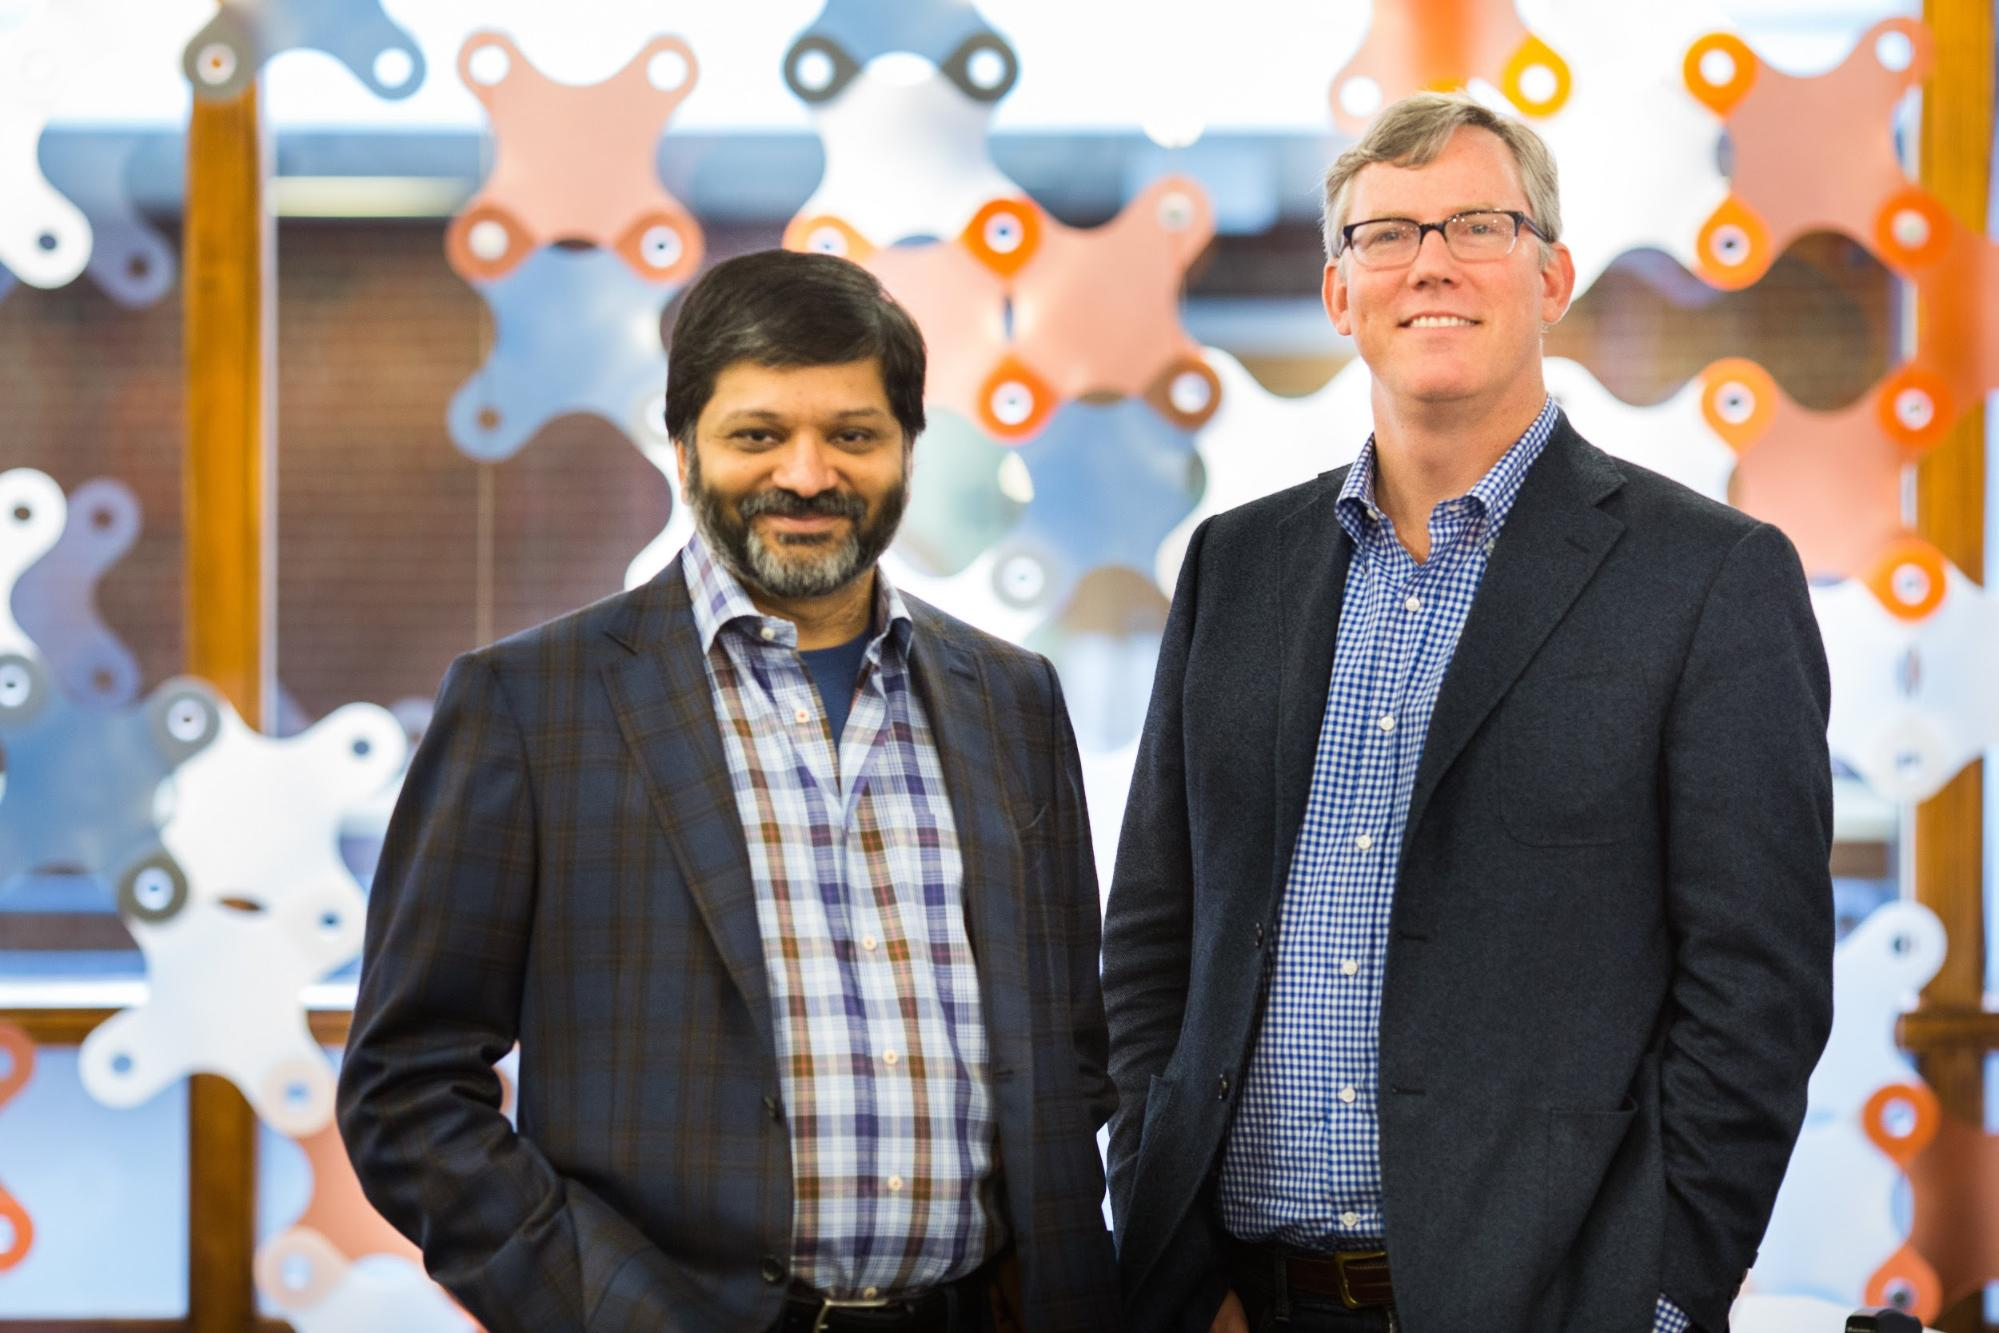 Photo of Hubspot founders Brian Halligan and Dharmesh Shash